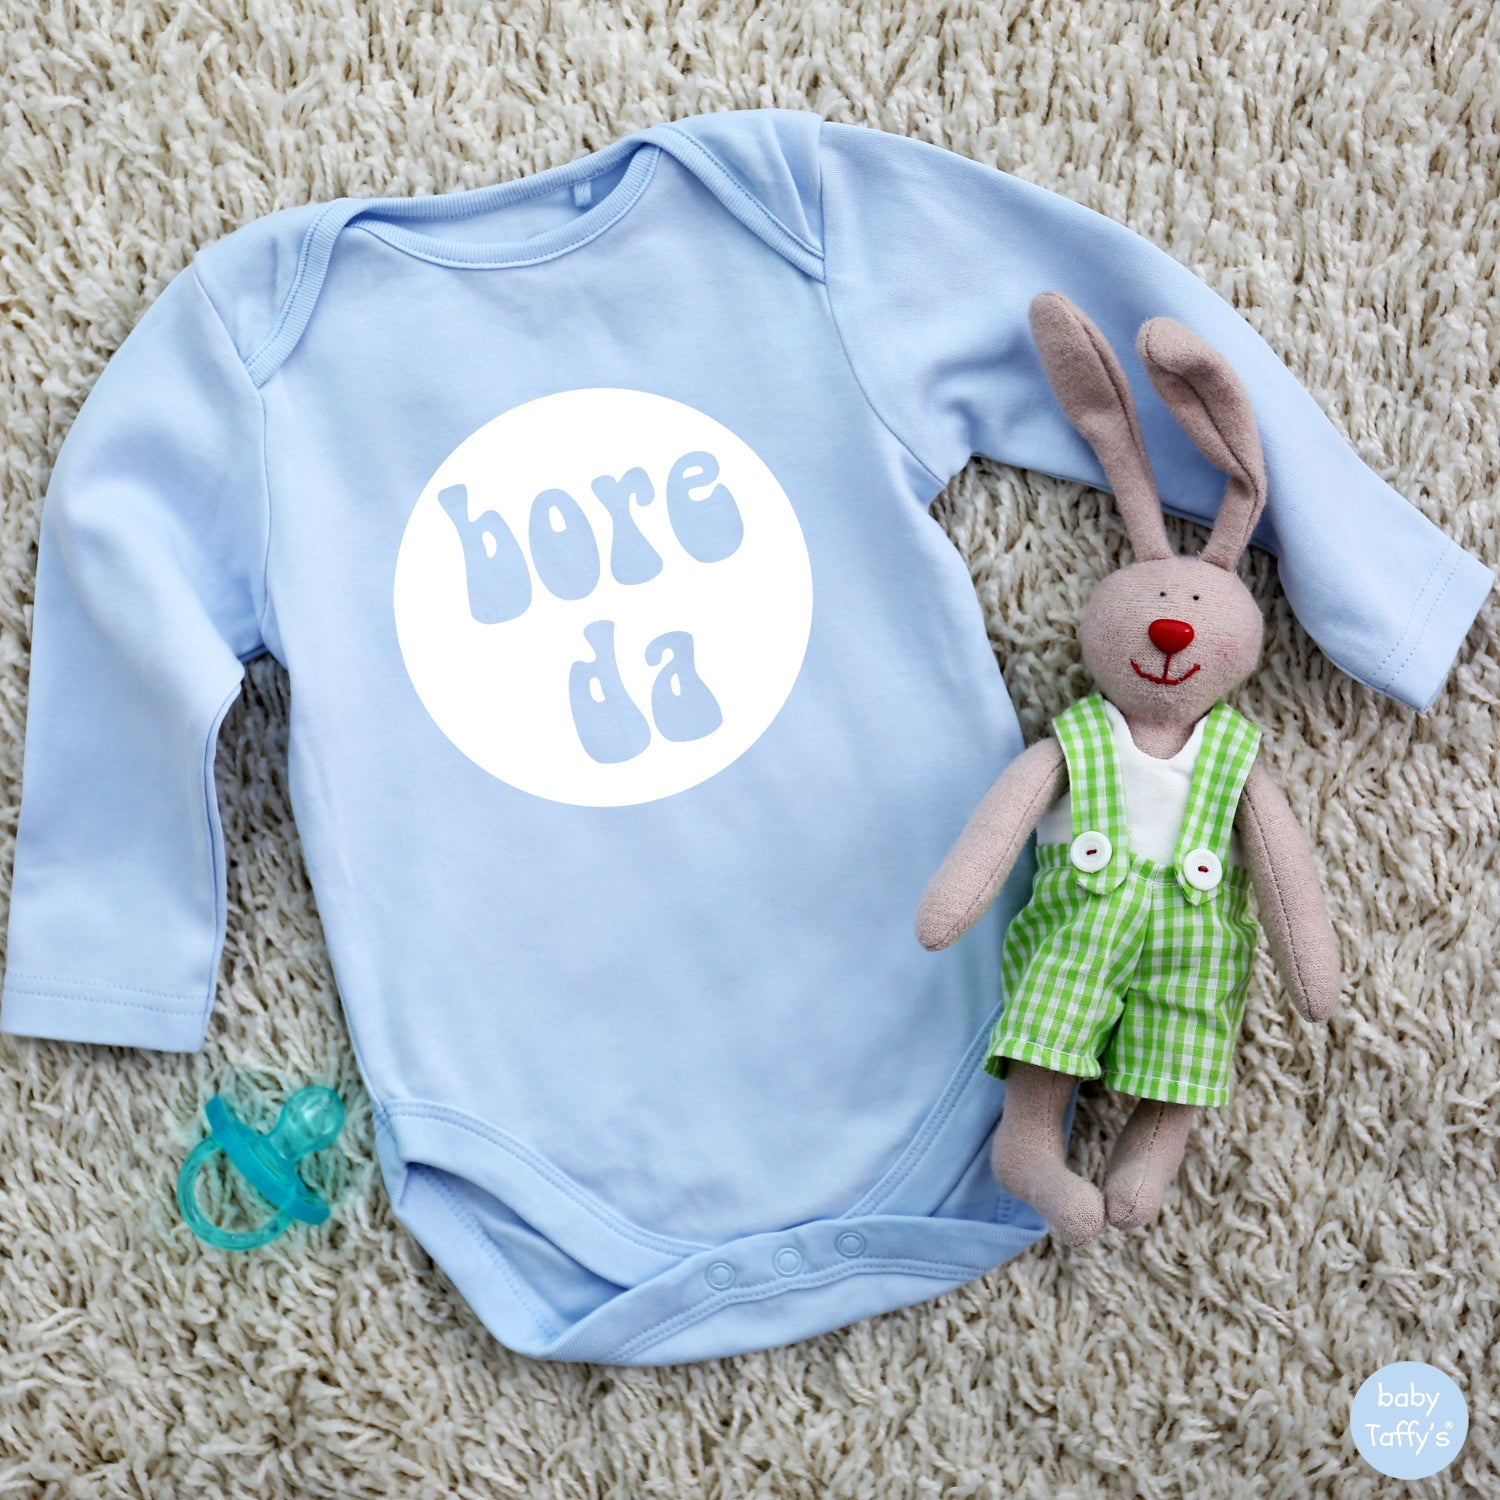 Welsh Baby Clothing by Taffy s at Giftware Wales